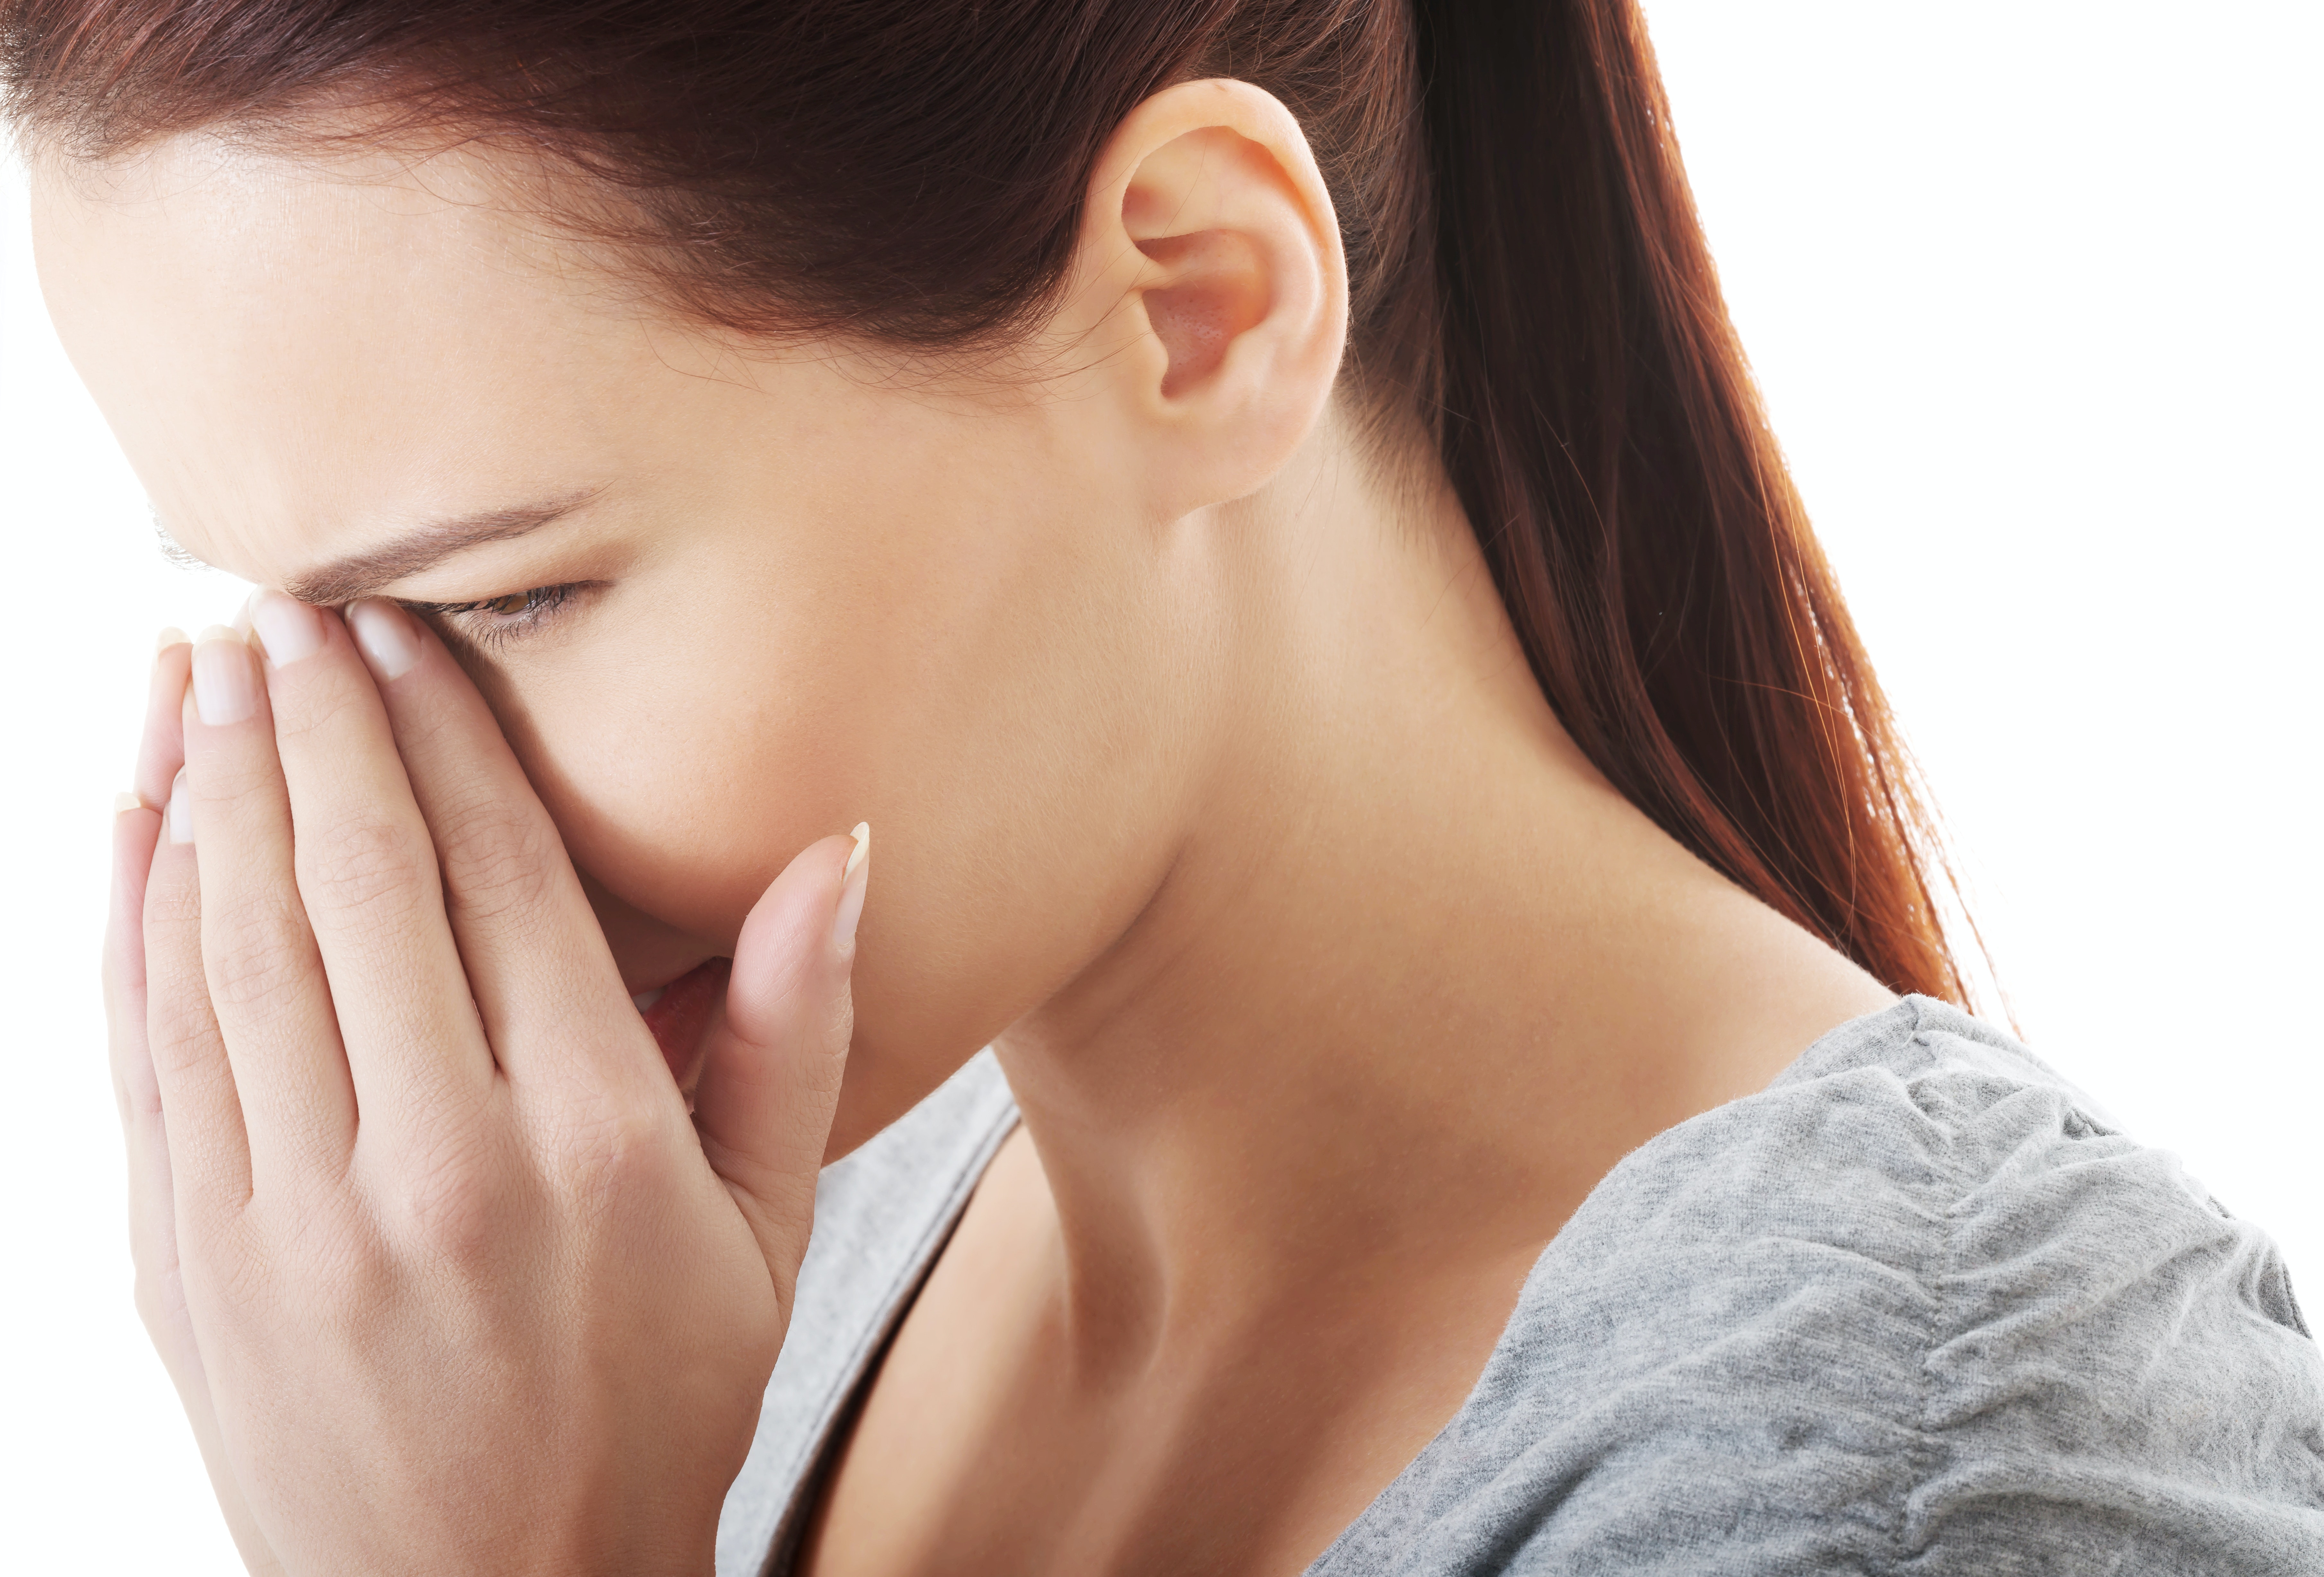 An image depicting a person suffering from bump in or on the nose symptoms